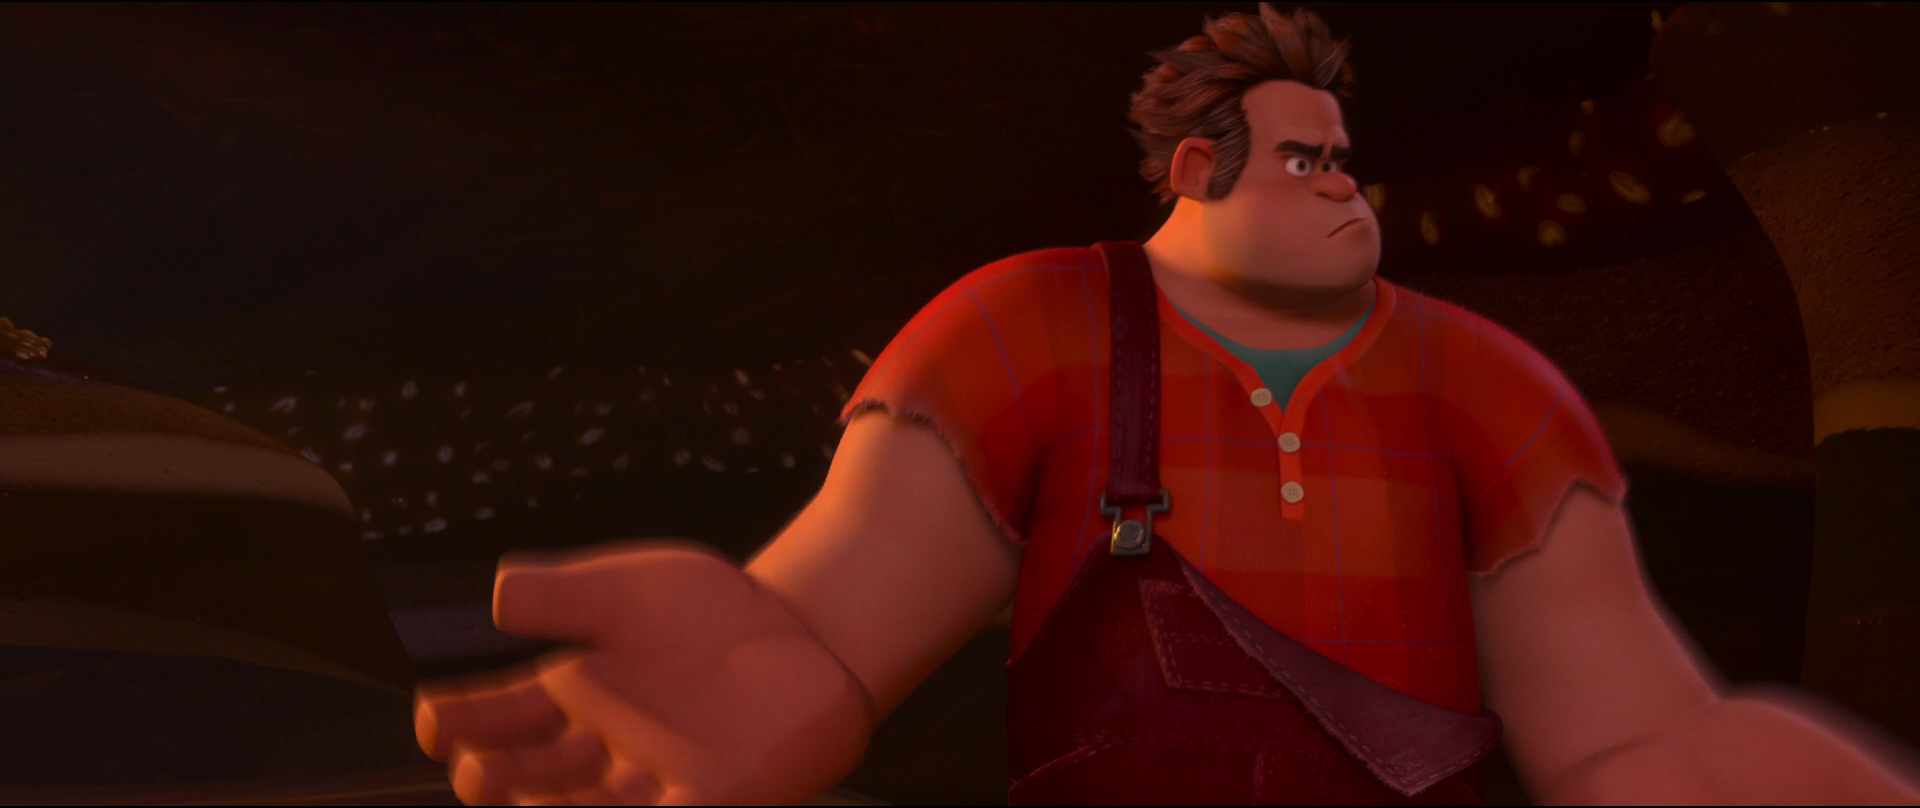 Wreck-It Ralph 2012 1080p BluRay x264-SPARKS [PublicHD] preview 7